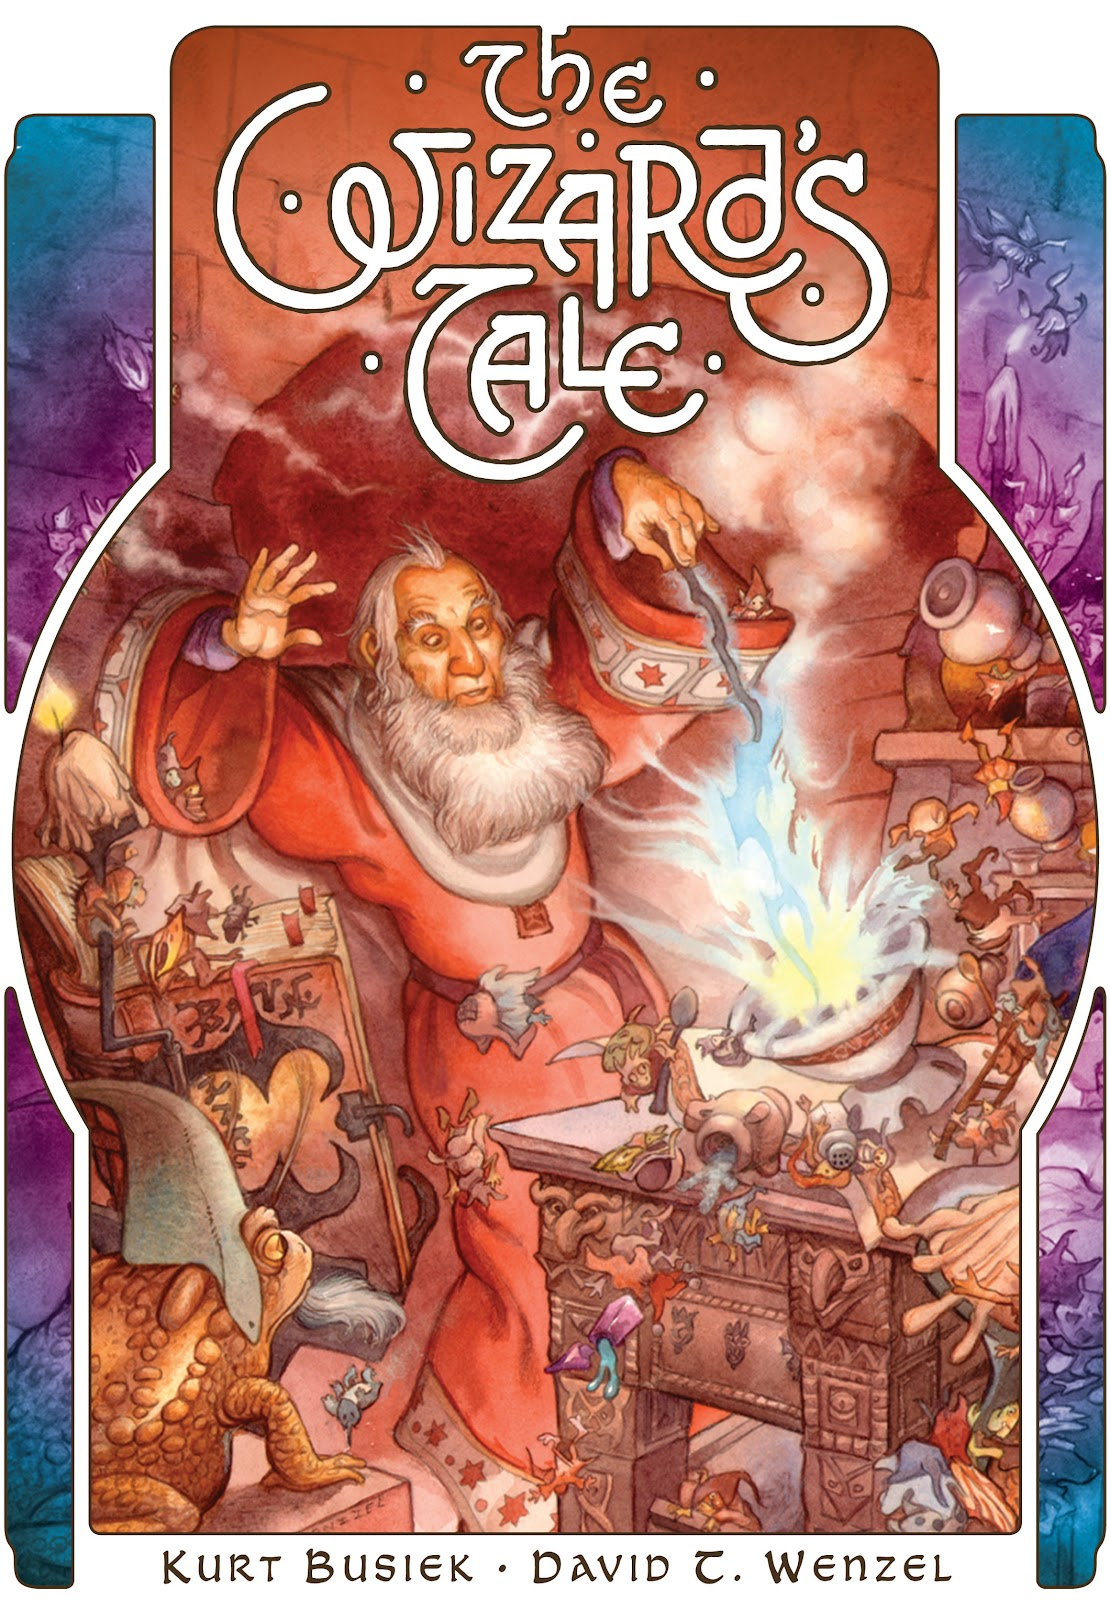 Read online The Wizard's Tale comic -  Issue # TPB - 1